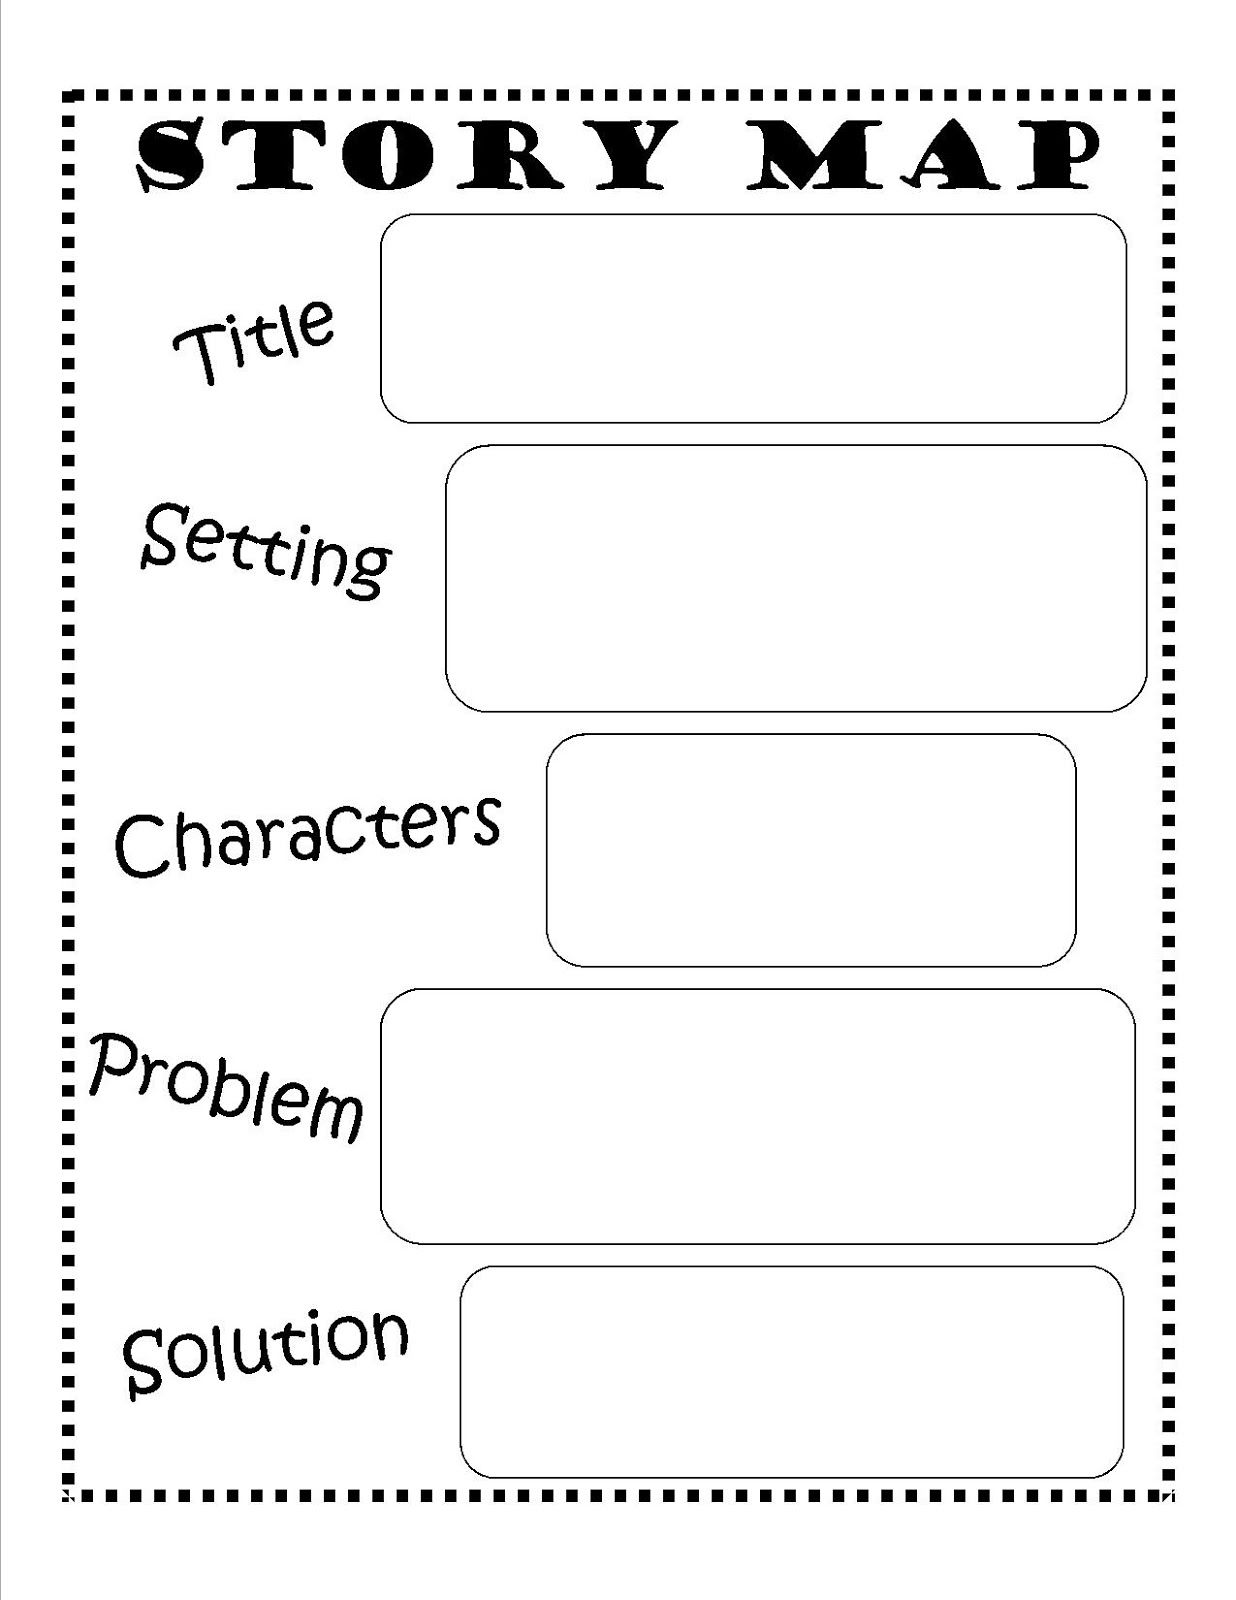 hight resolution of A Bunch of Bishops: Story Map - FREE Printable   Story map template